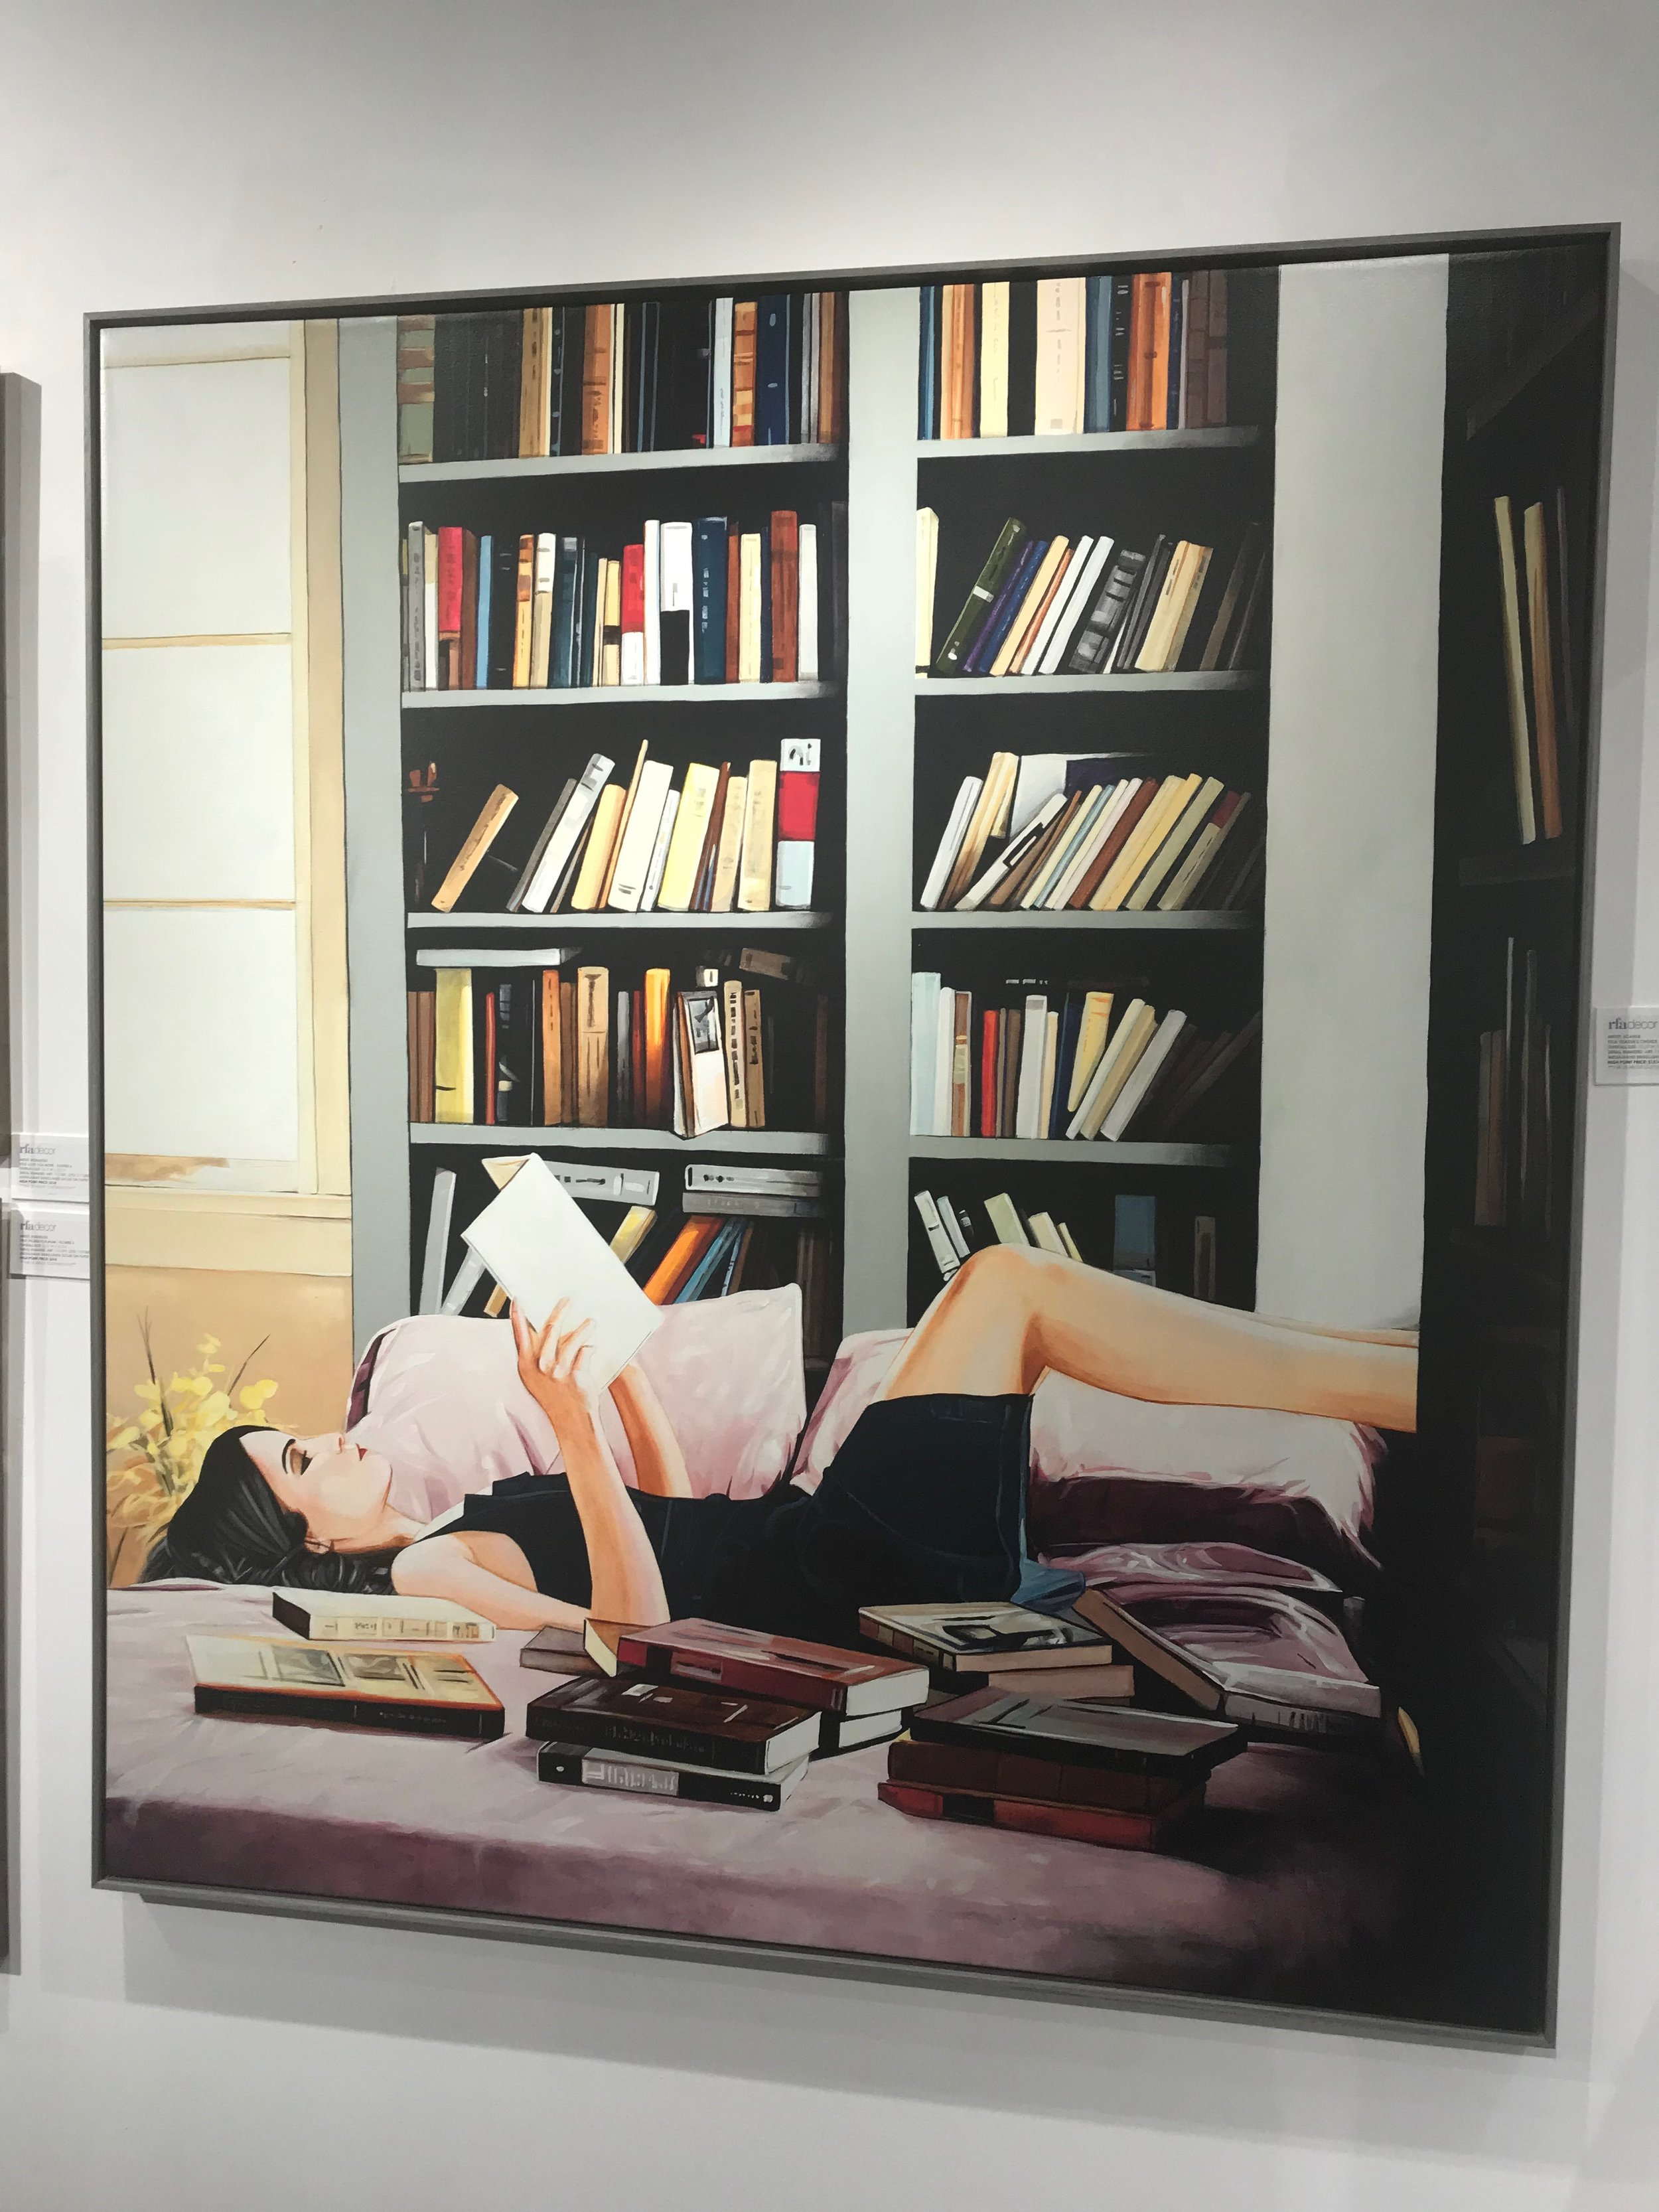 Why did I choose this image of a relaxing book read???… Well I'm trying to be patient during a messy remodel LOL